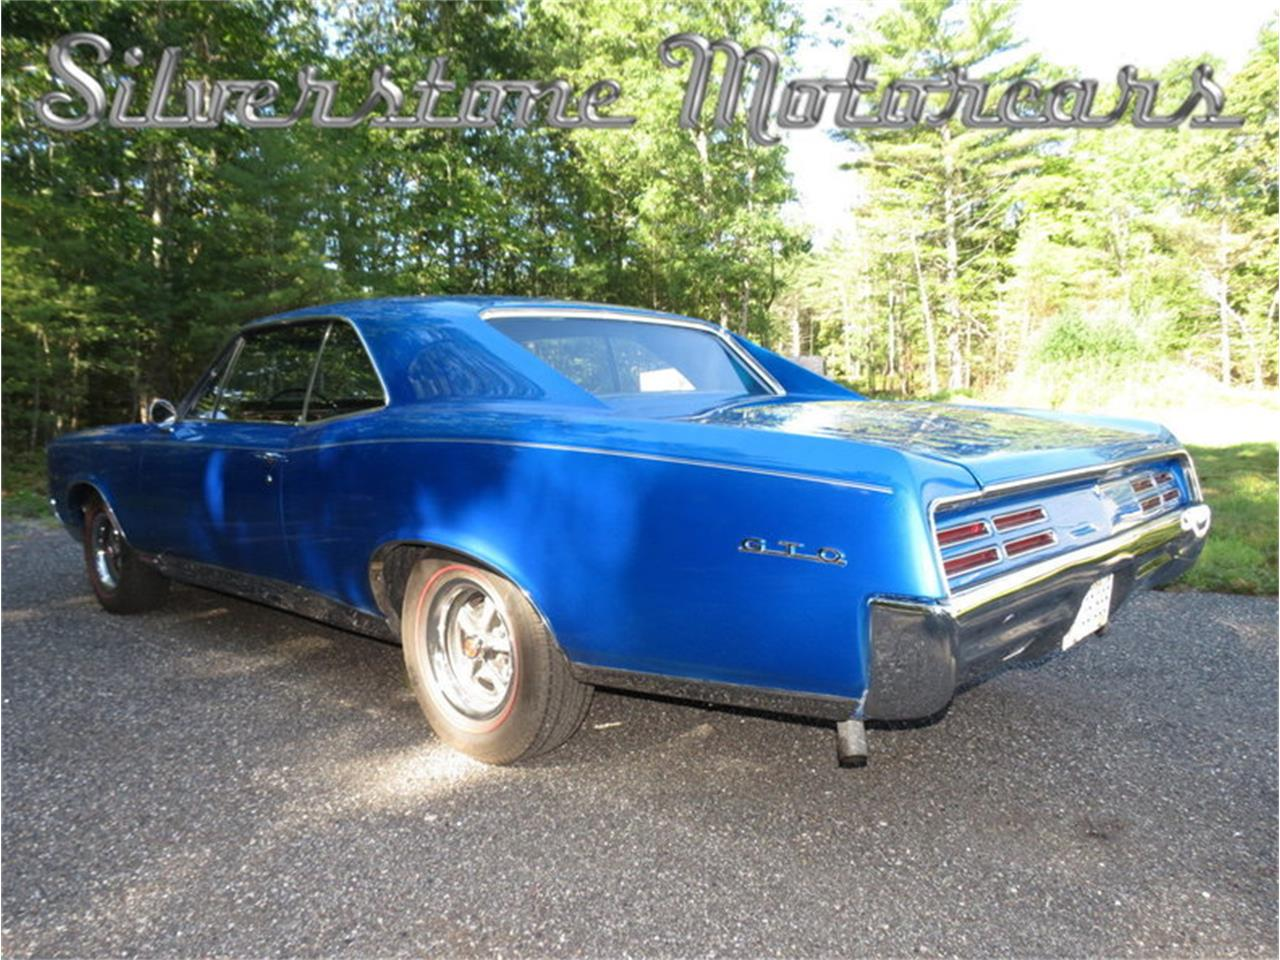 Large Picture of Classic '67 Pontiac GTO located in Massachusetts - $59,900.00 Offered by Silverstone Motorcars - JG3G